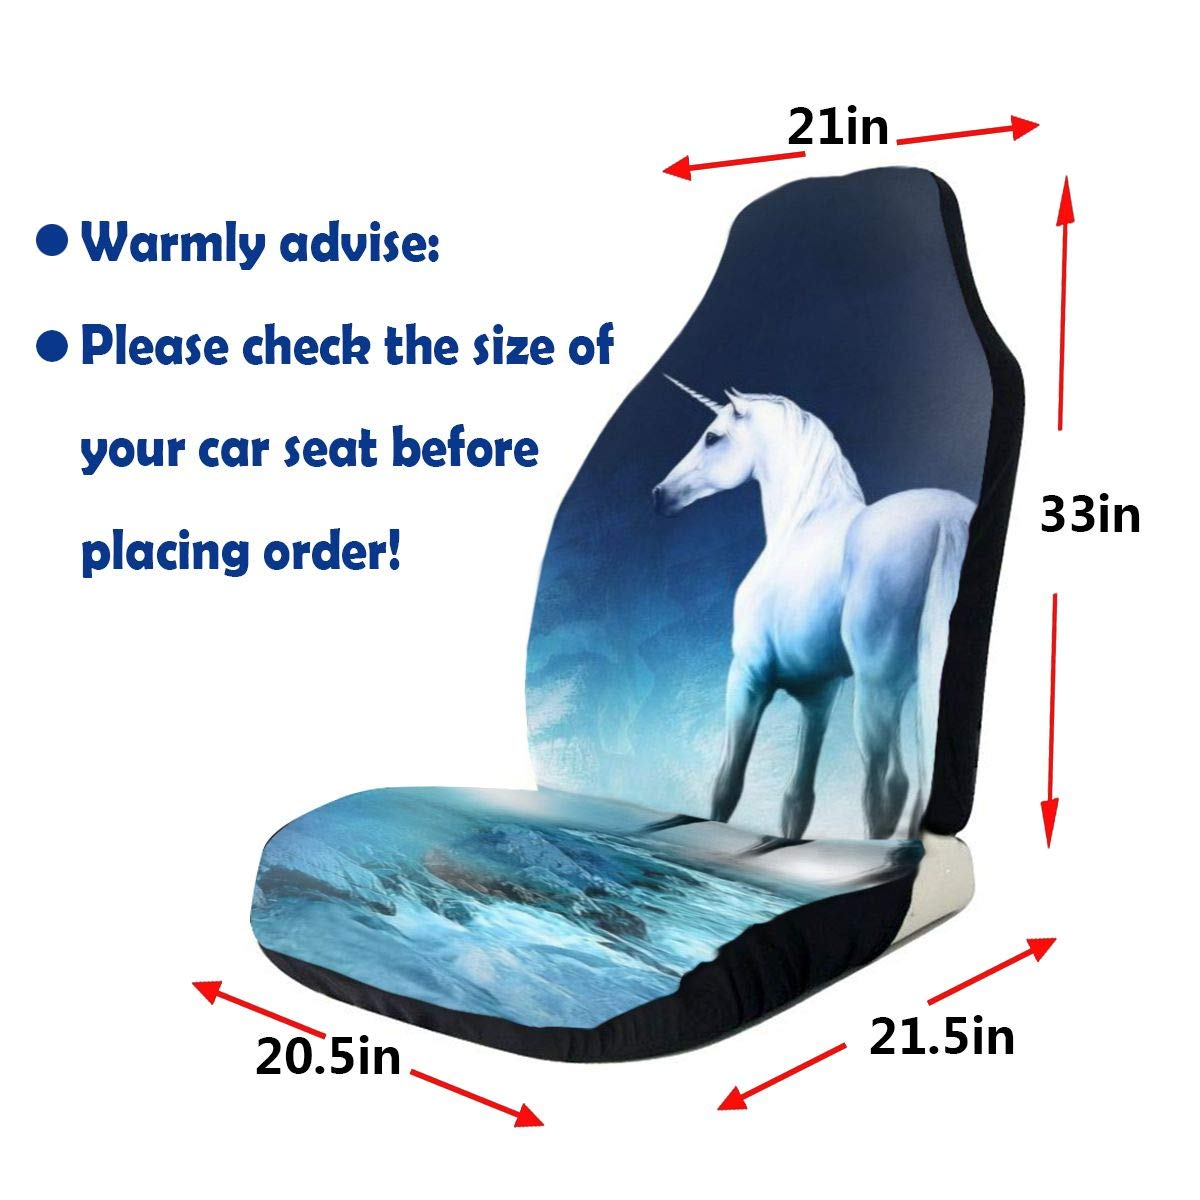 HDSTGD Car Seat Covers,Unicorn Under Blue Moonlight Design Front Seat Covers 1pc//2 Pc,Vehicle Seat Protector Car Mat Covers,Fit Most Vehicle,Cars,Sedan,Truck,SUV Or Van